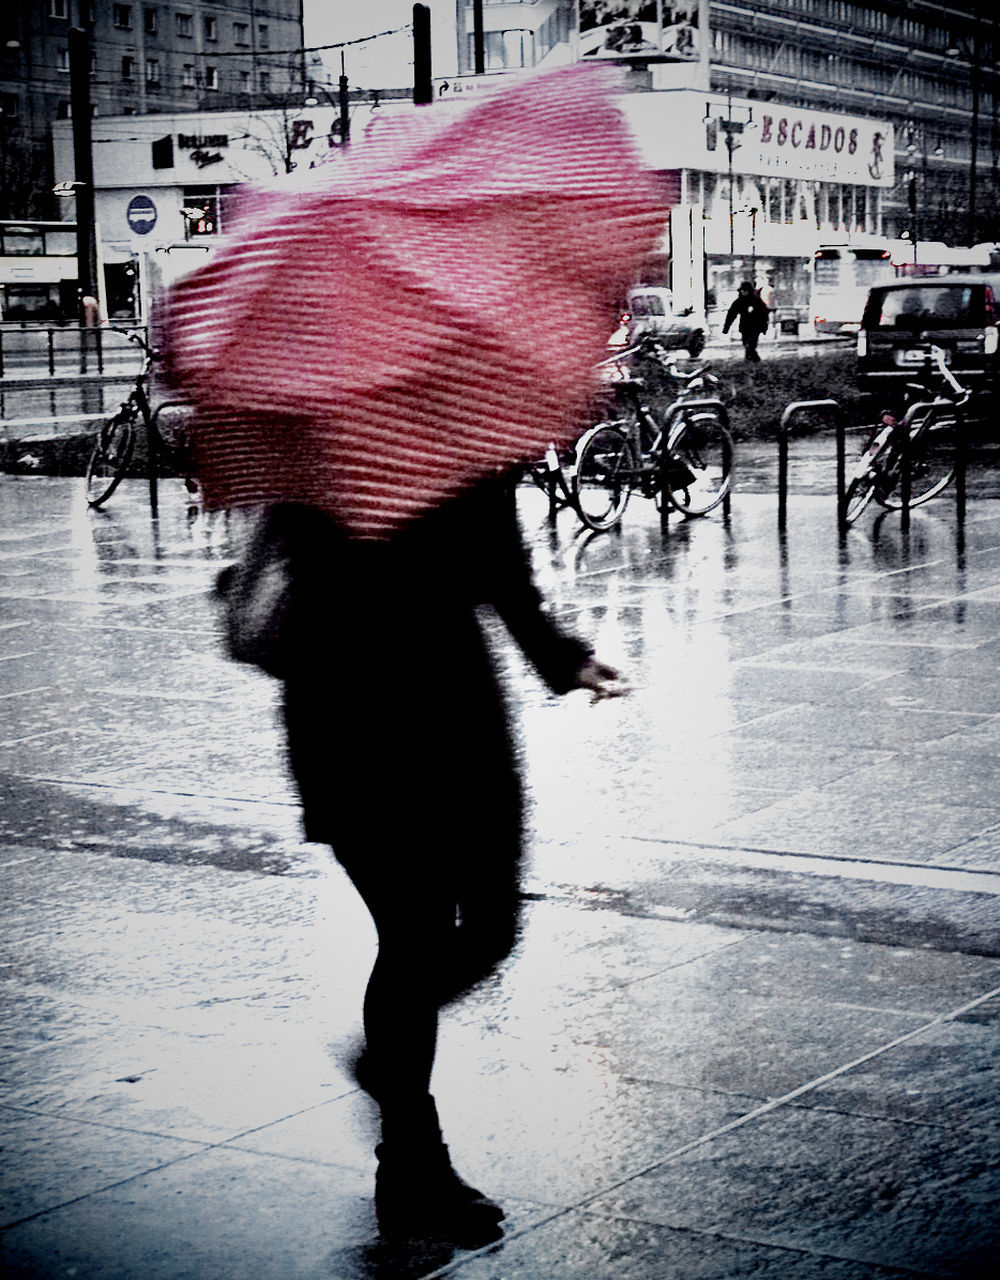 Woman With Umbrella Walking On Street In City During Monsoon